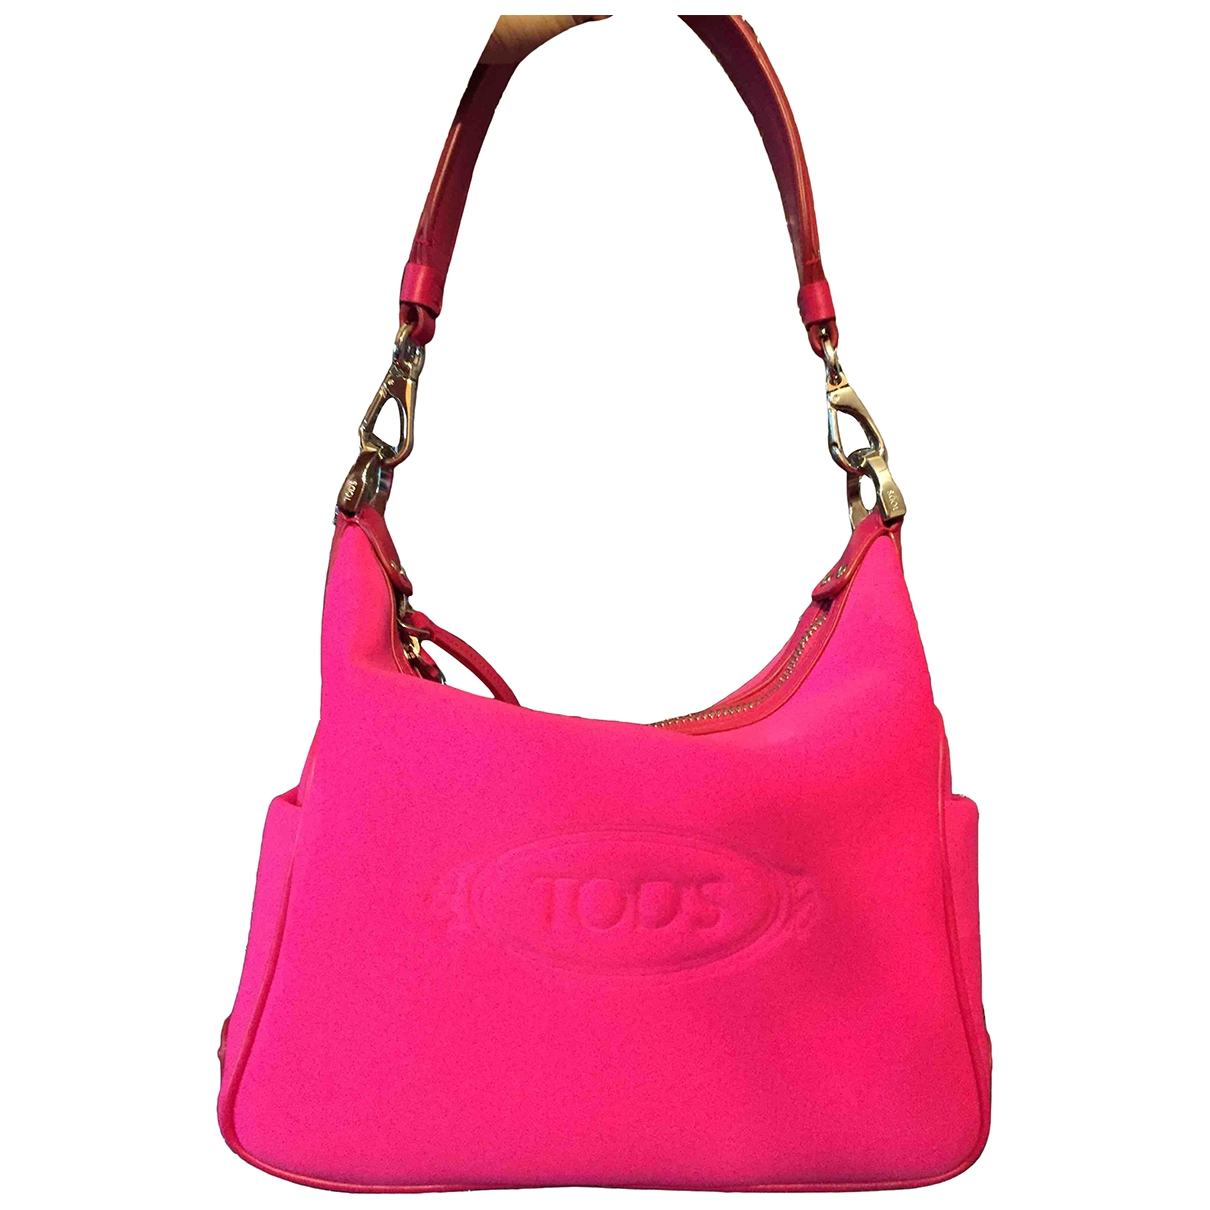 Tods - Sac a main   pour femme - rose